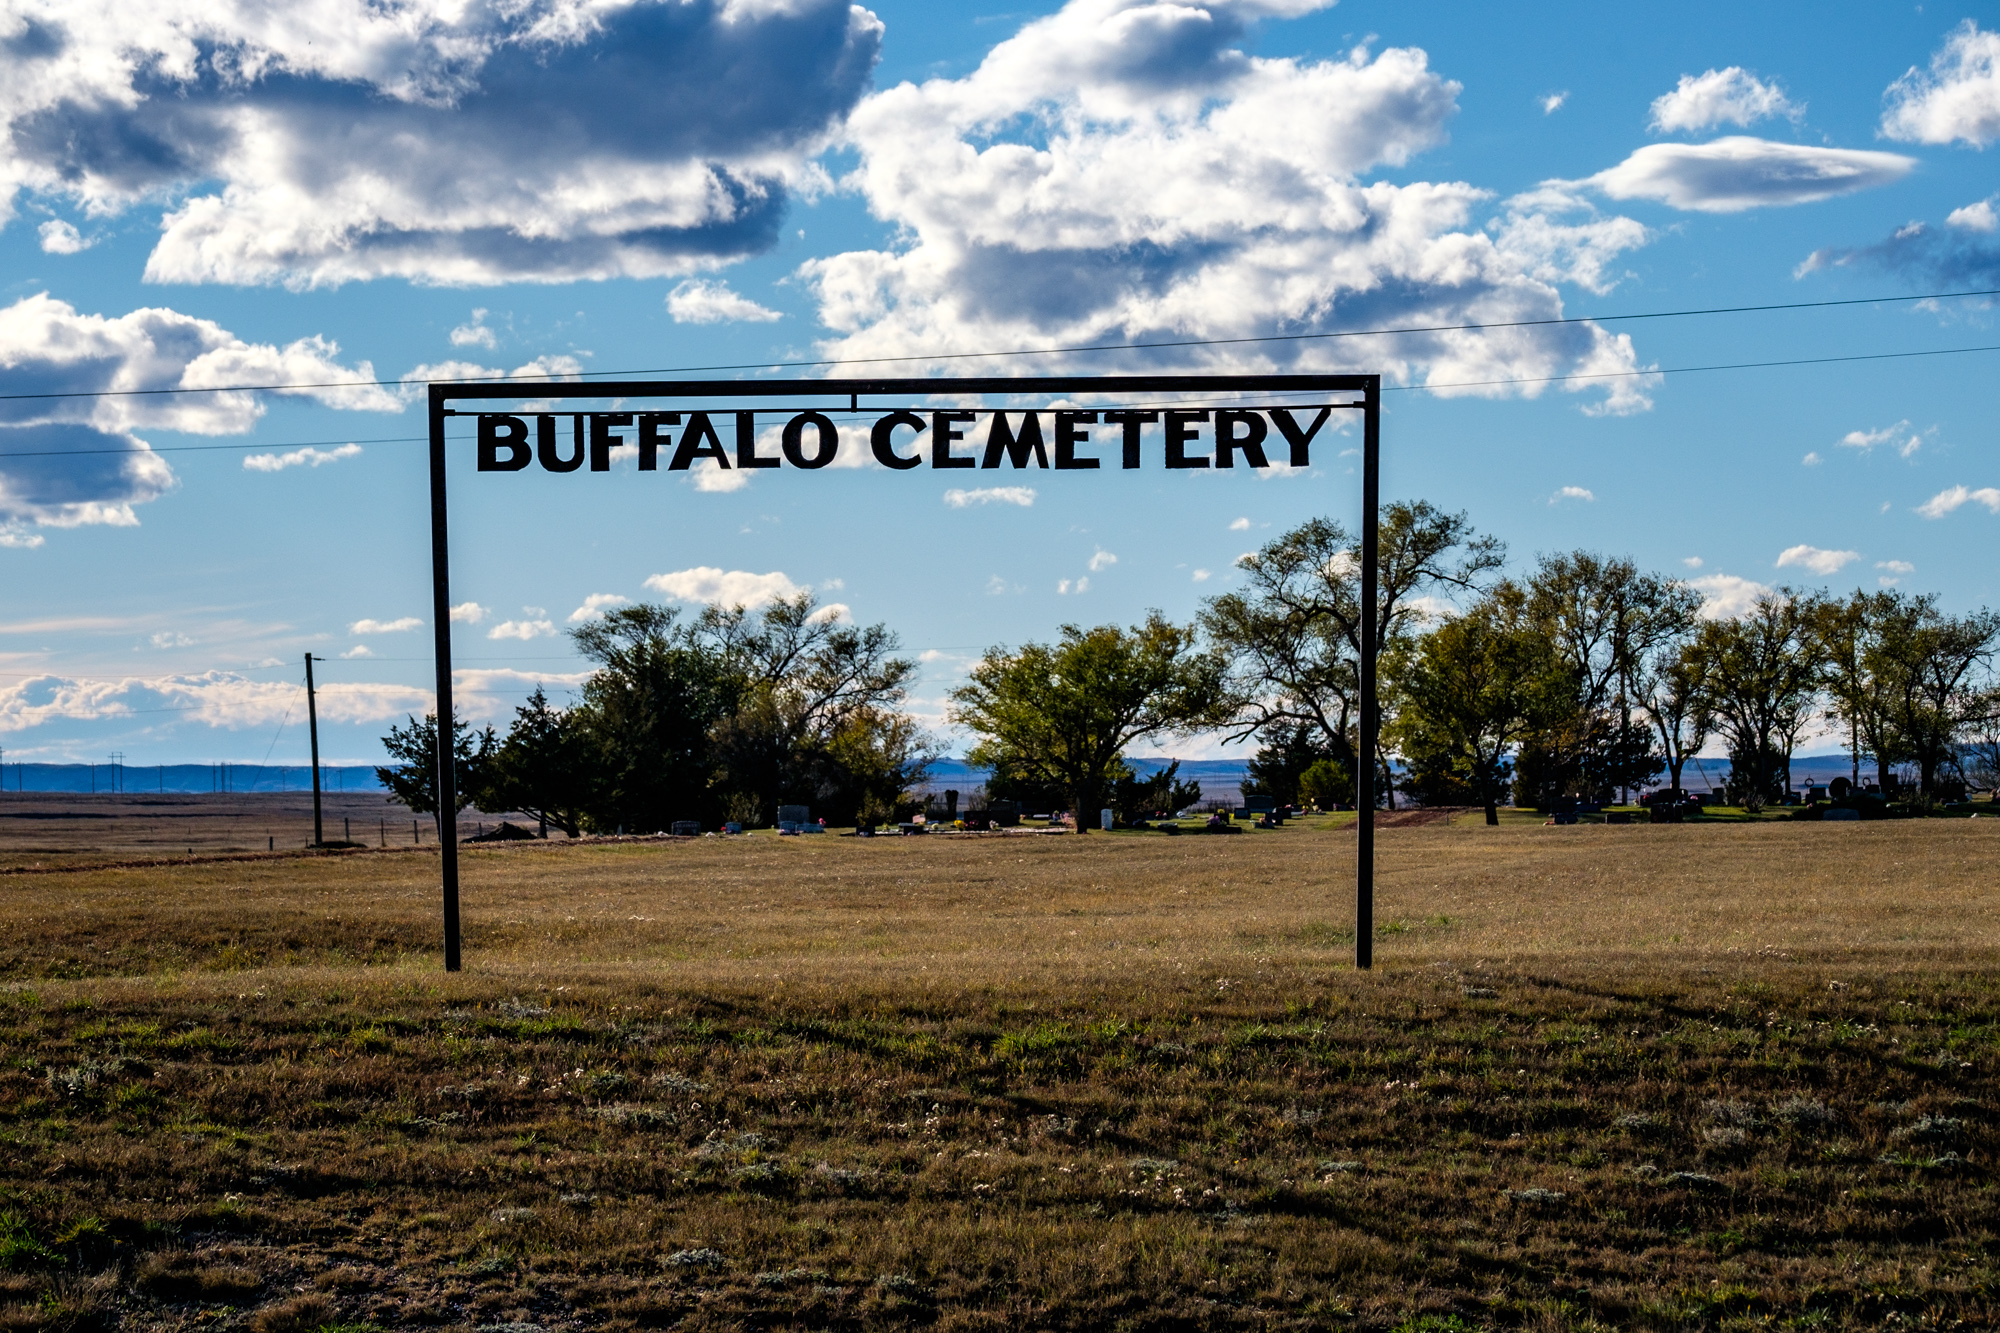 """We passed this """"Buffalo Cemetery"""" on the way to the park."""